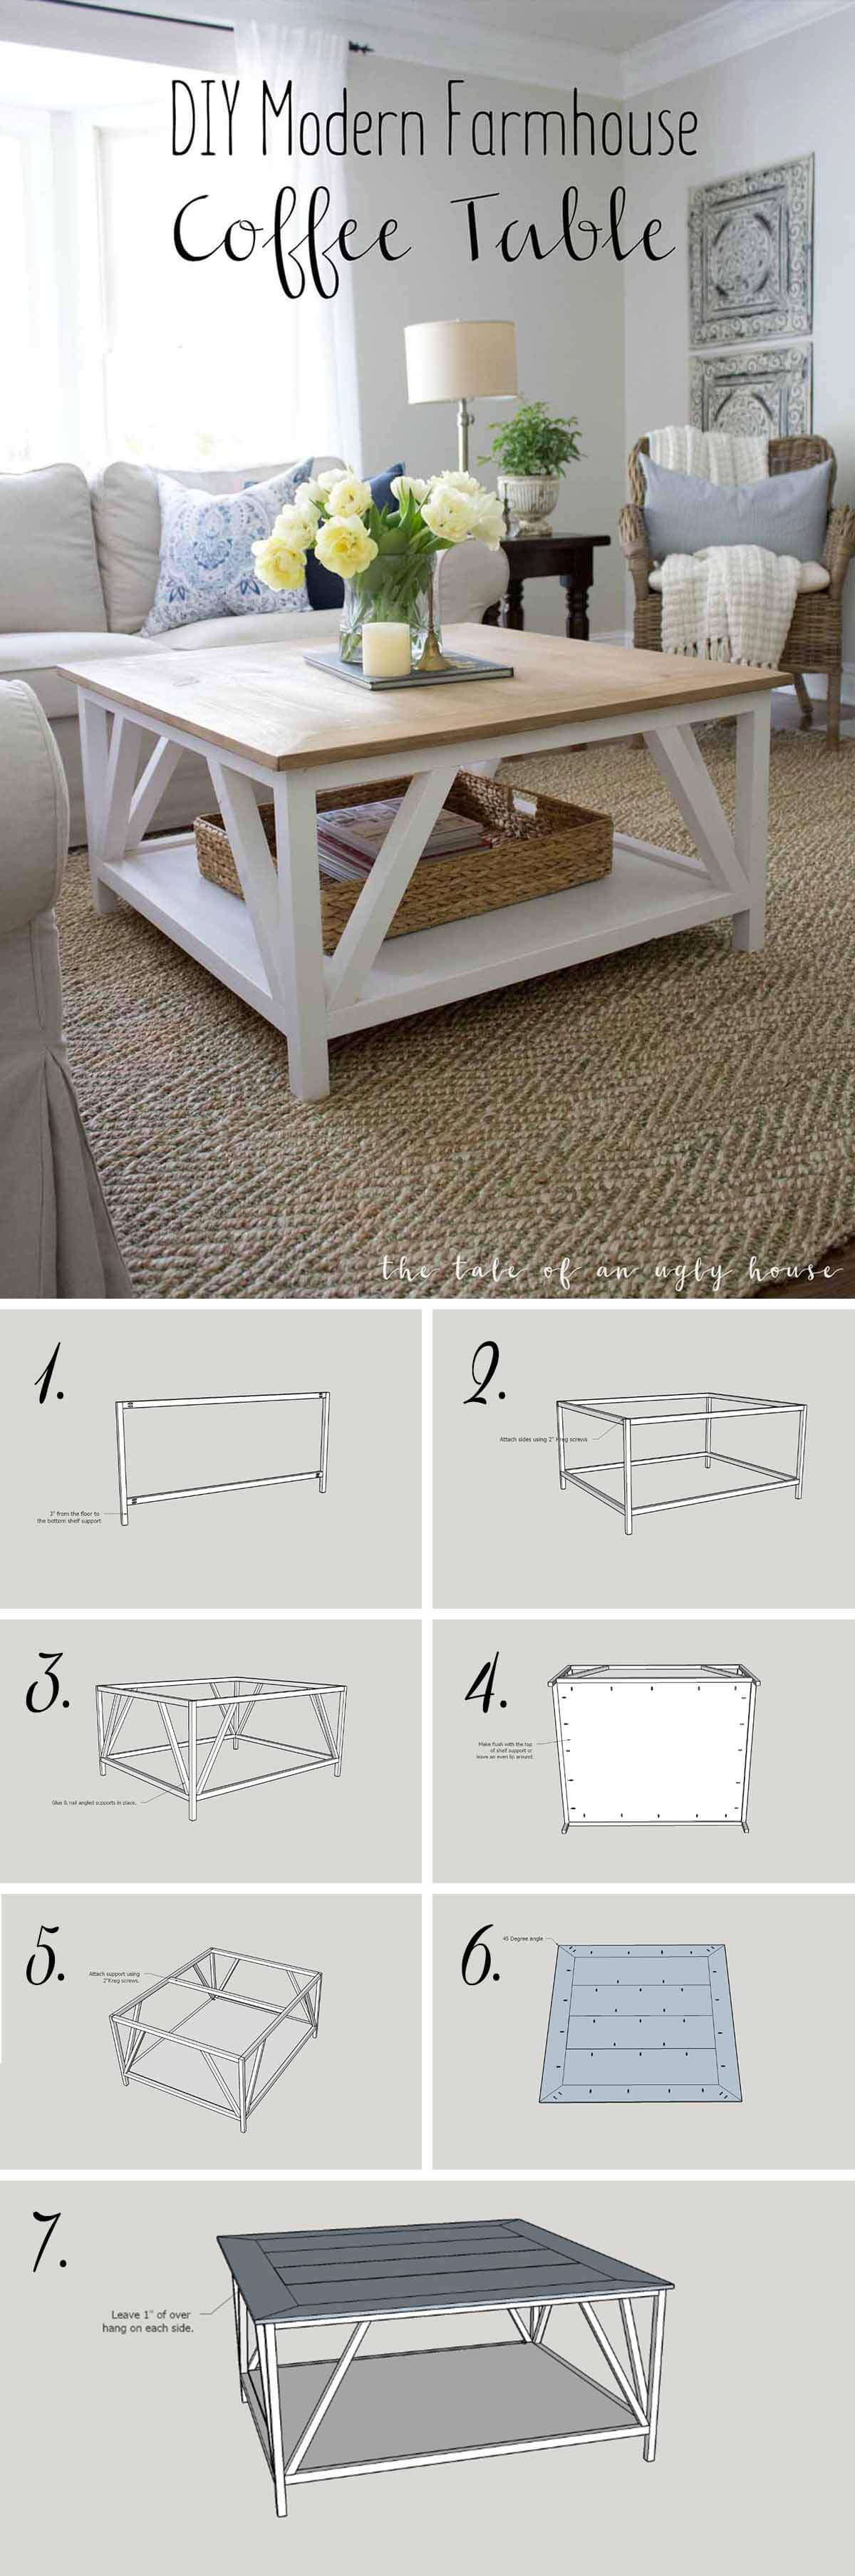 best diy farmhouse coffee table ideas and designs for homebnc accent decor pretty cottage inspired bright white look boho office furniture silver lamps outside patio bar